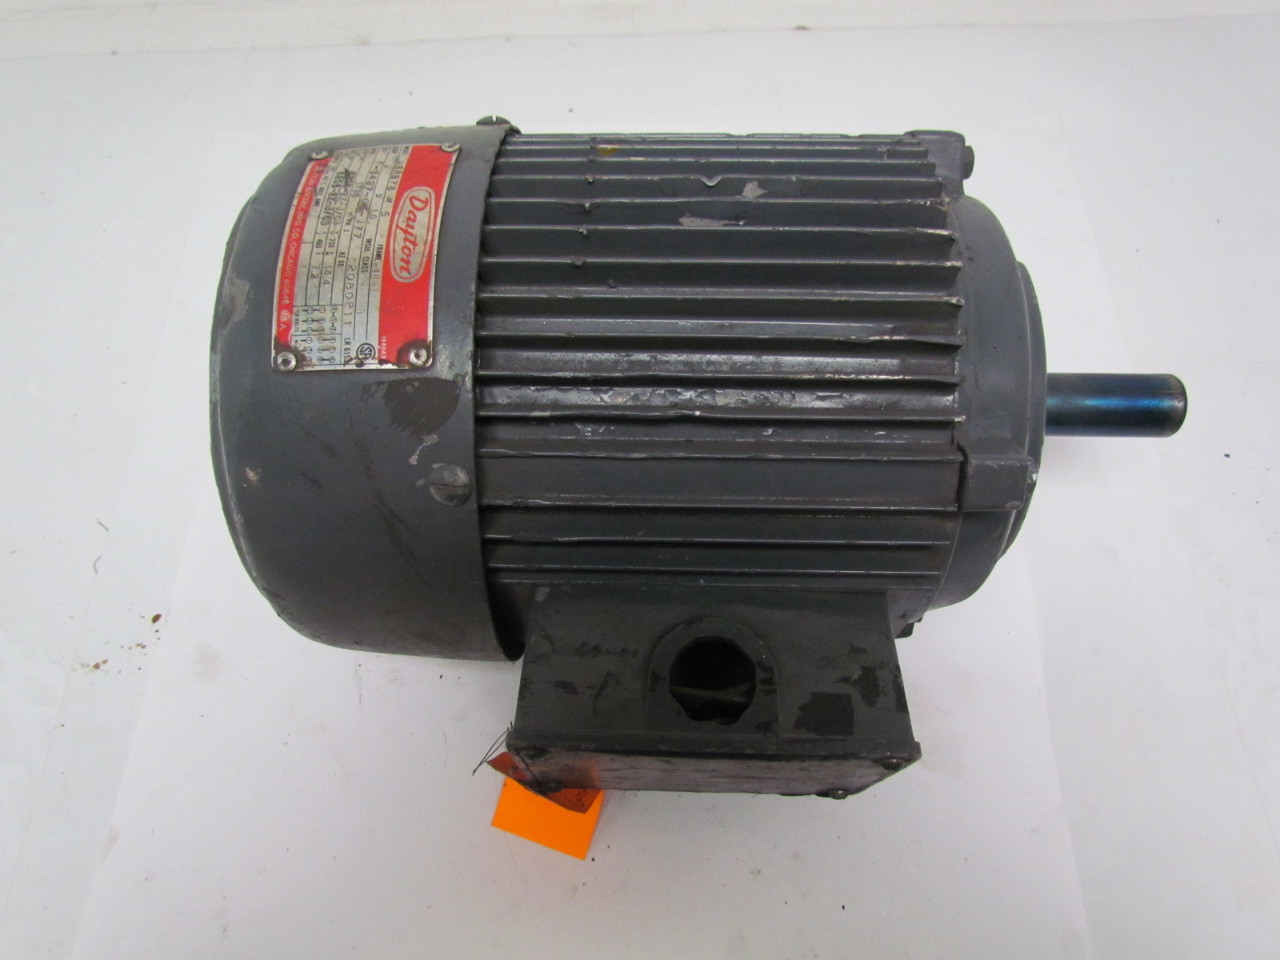 Dayton electric a3n378 5hp 460volt 1730rpm 60hz ebay for Dayton electric motors customer service